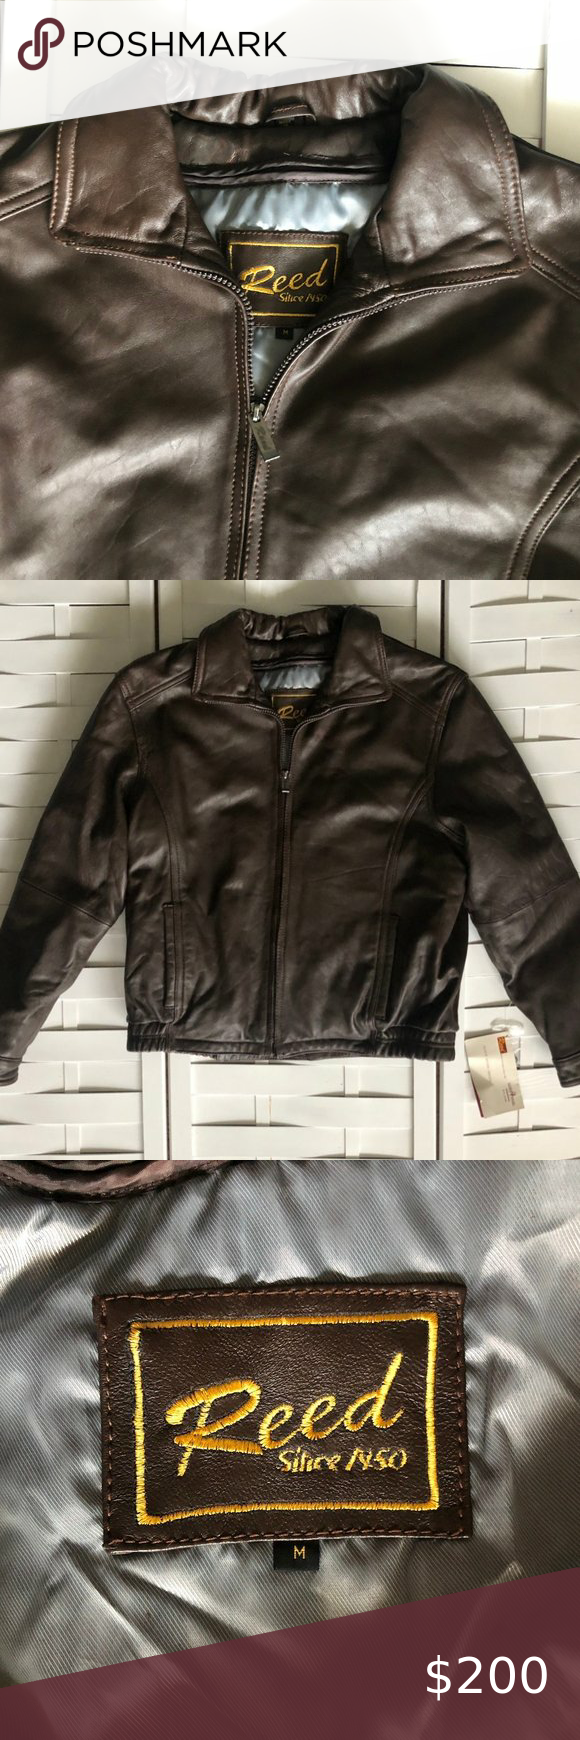 Leather Bomber Motorcycle Jacket Condition New With Tags Brand Nwt Reed Leather Bomber Moto Brown Leather Bomber Jacket Suede Jacket Men Wool Bomber Jacket [ 1740 x 580 Pixel ]